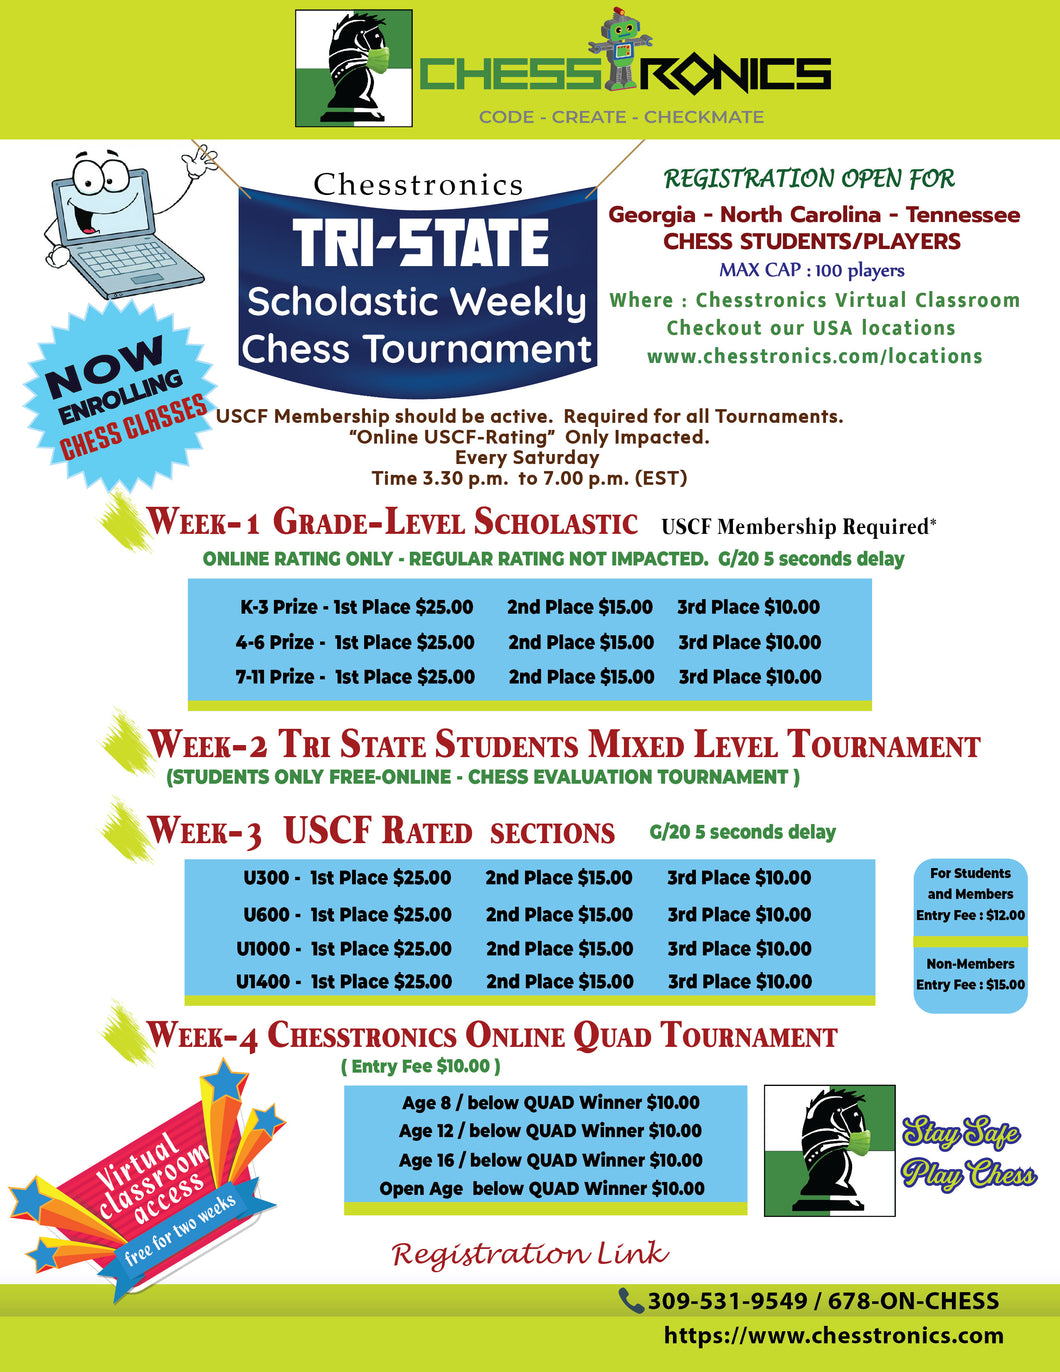 K-12 Tri-State-East Online USCF Rated Tournament - Every Week Saturday (4.00 p.m. to 7.00 p.m. EST)